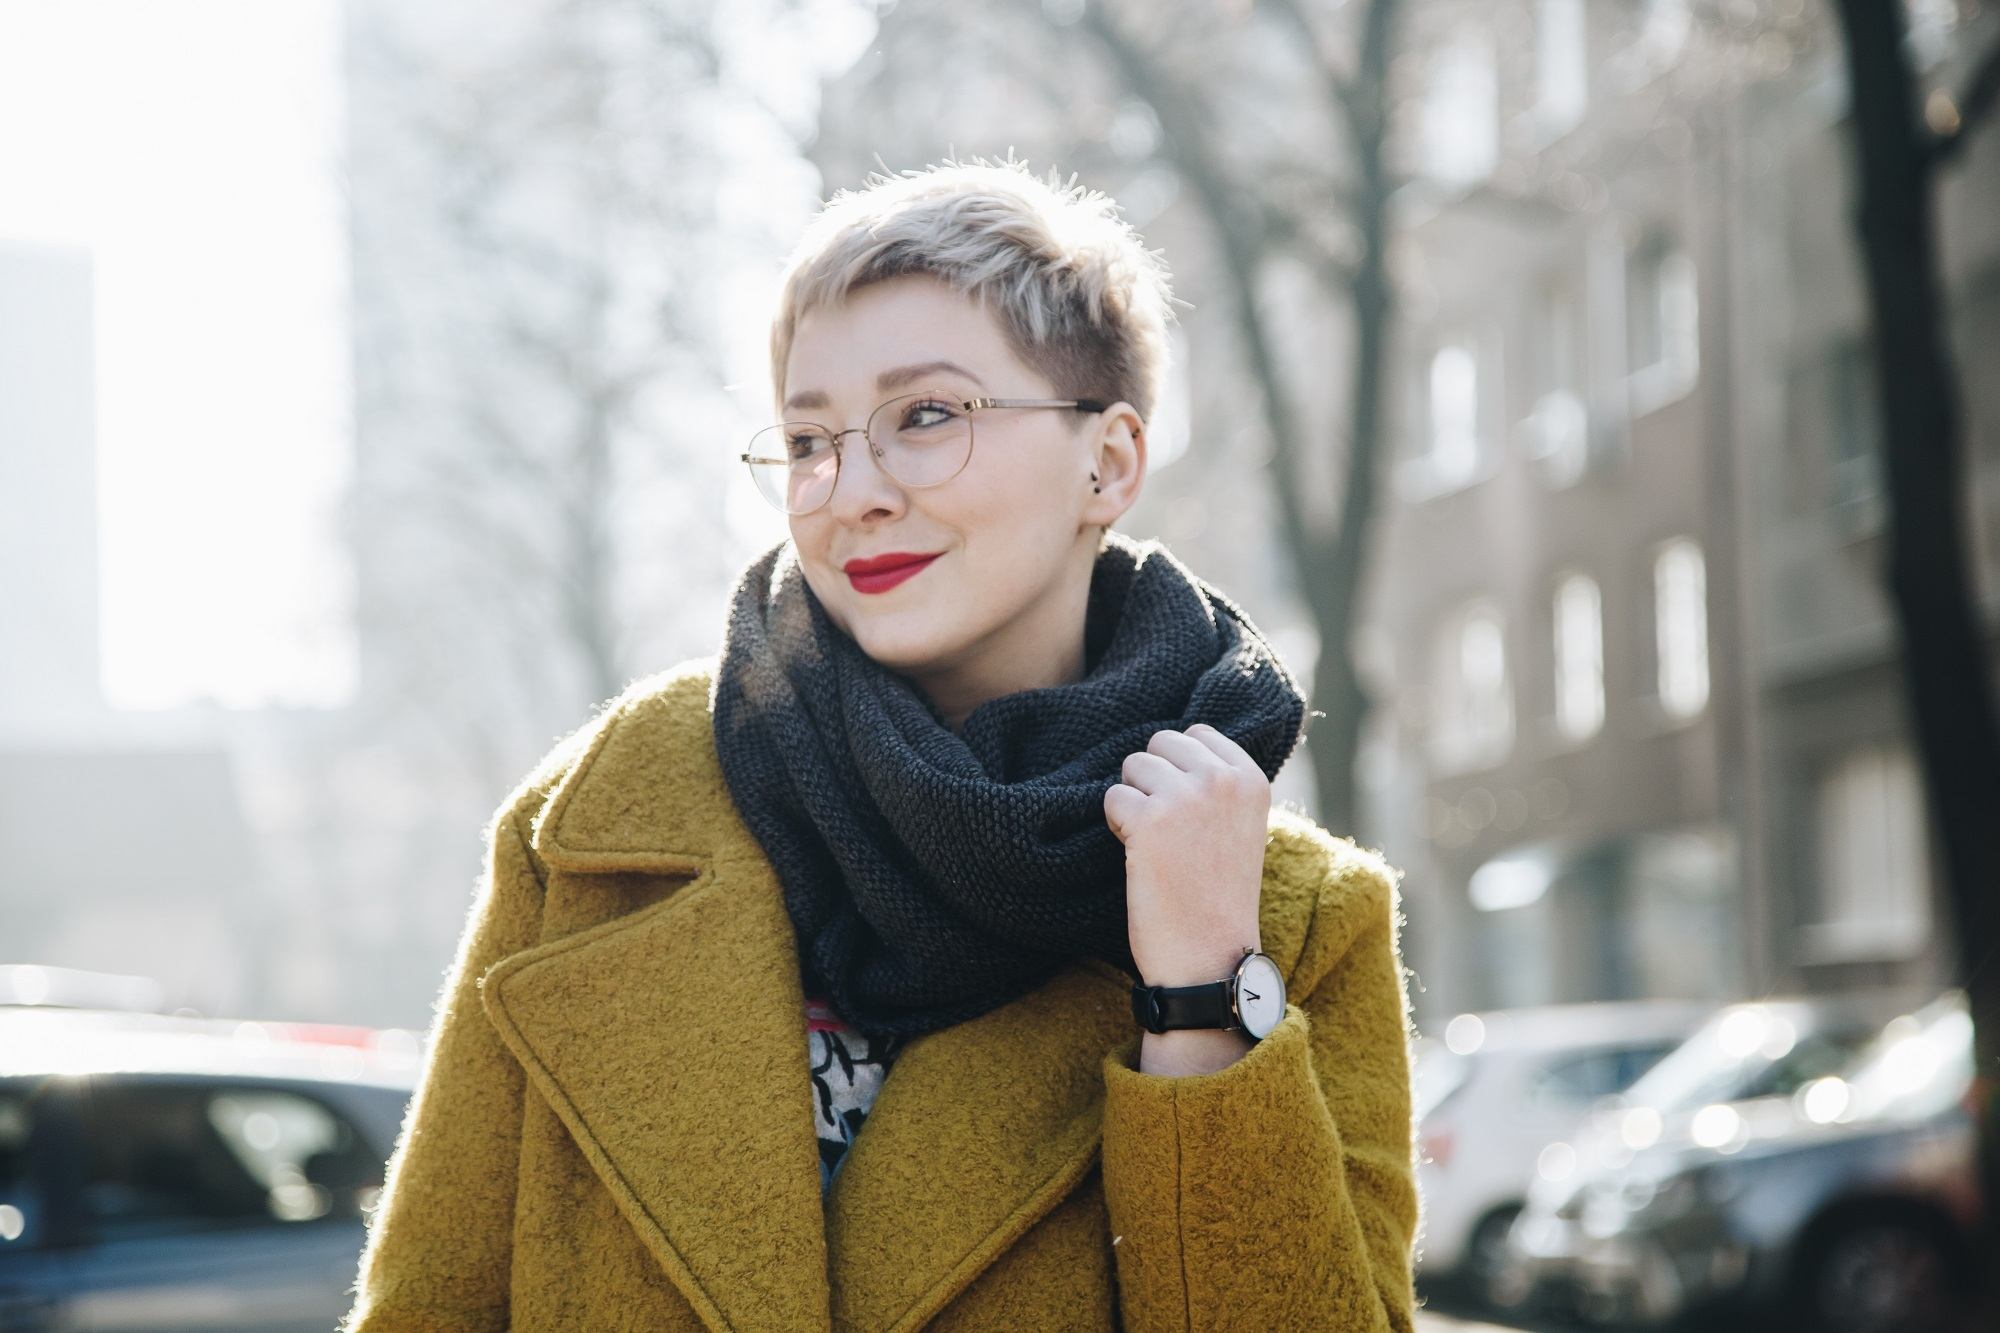 Pixie cut: Hairstyles for glasses wearers